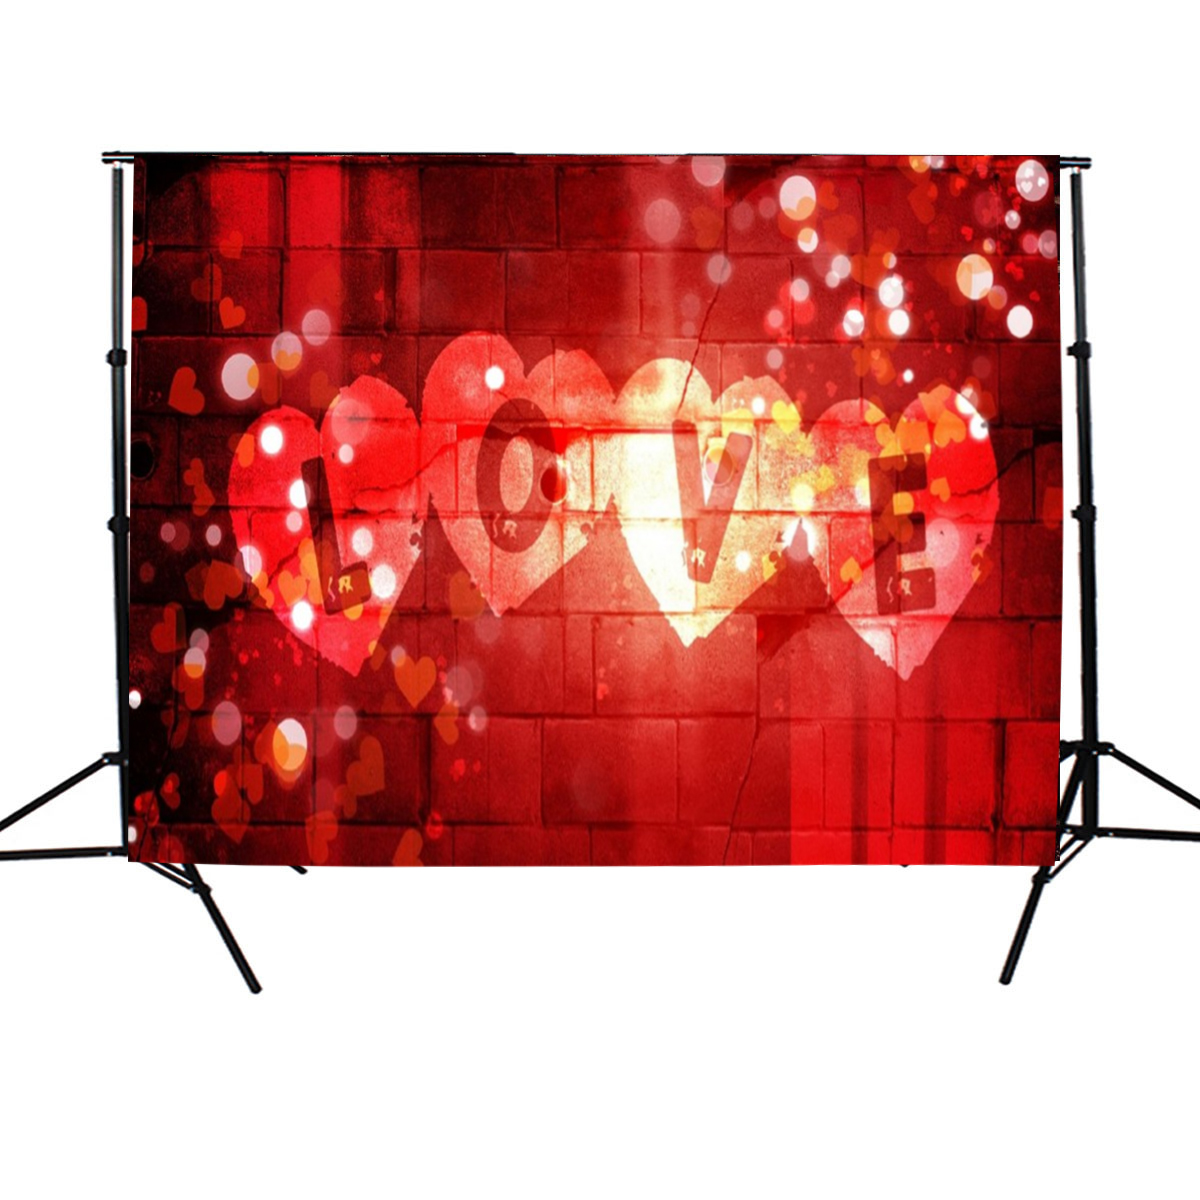 7x5FT Valentine's Day Love Hearts Photography